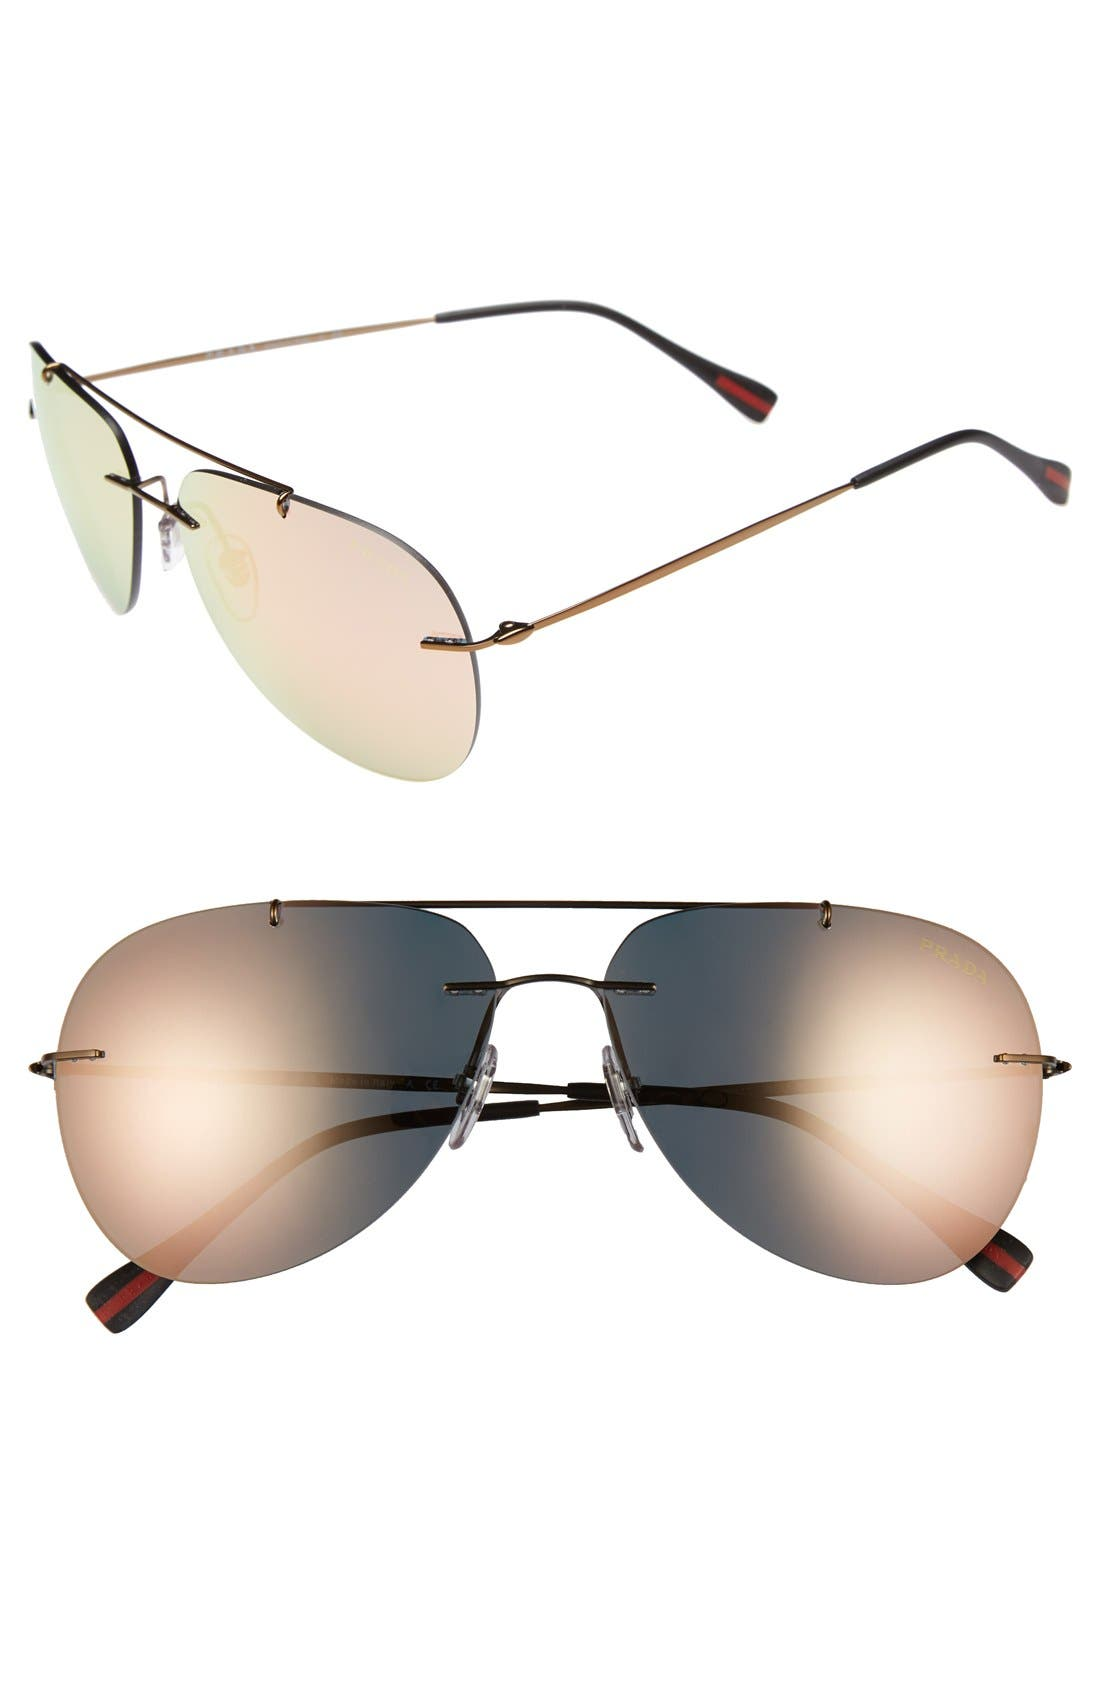 Main Image - Prada 60mm Rimless Aviator Sunglasses